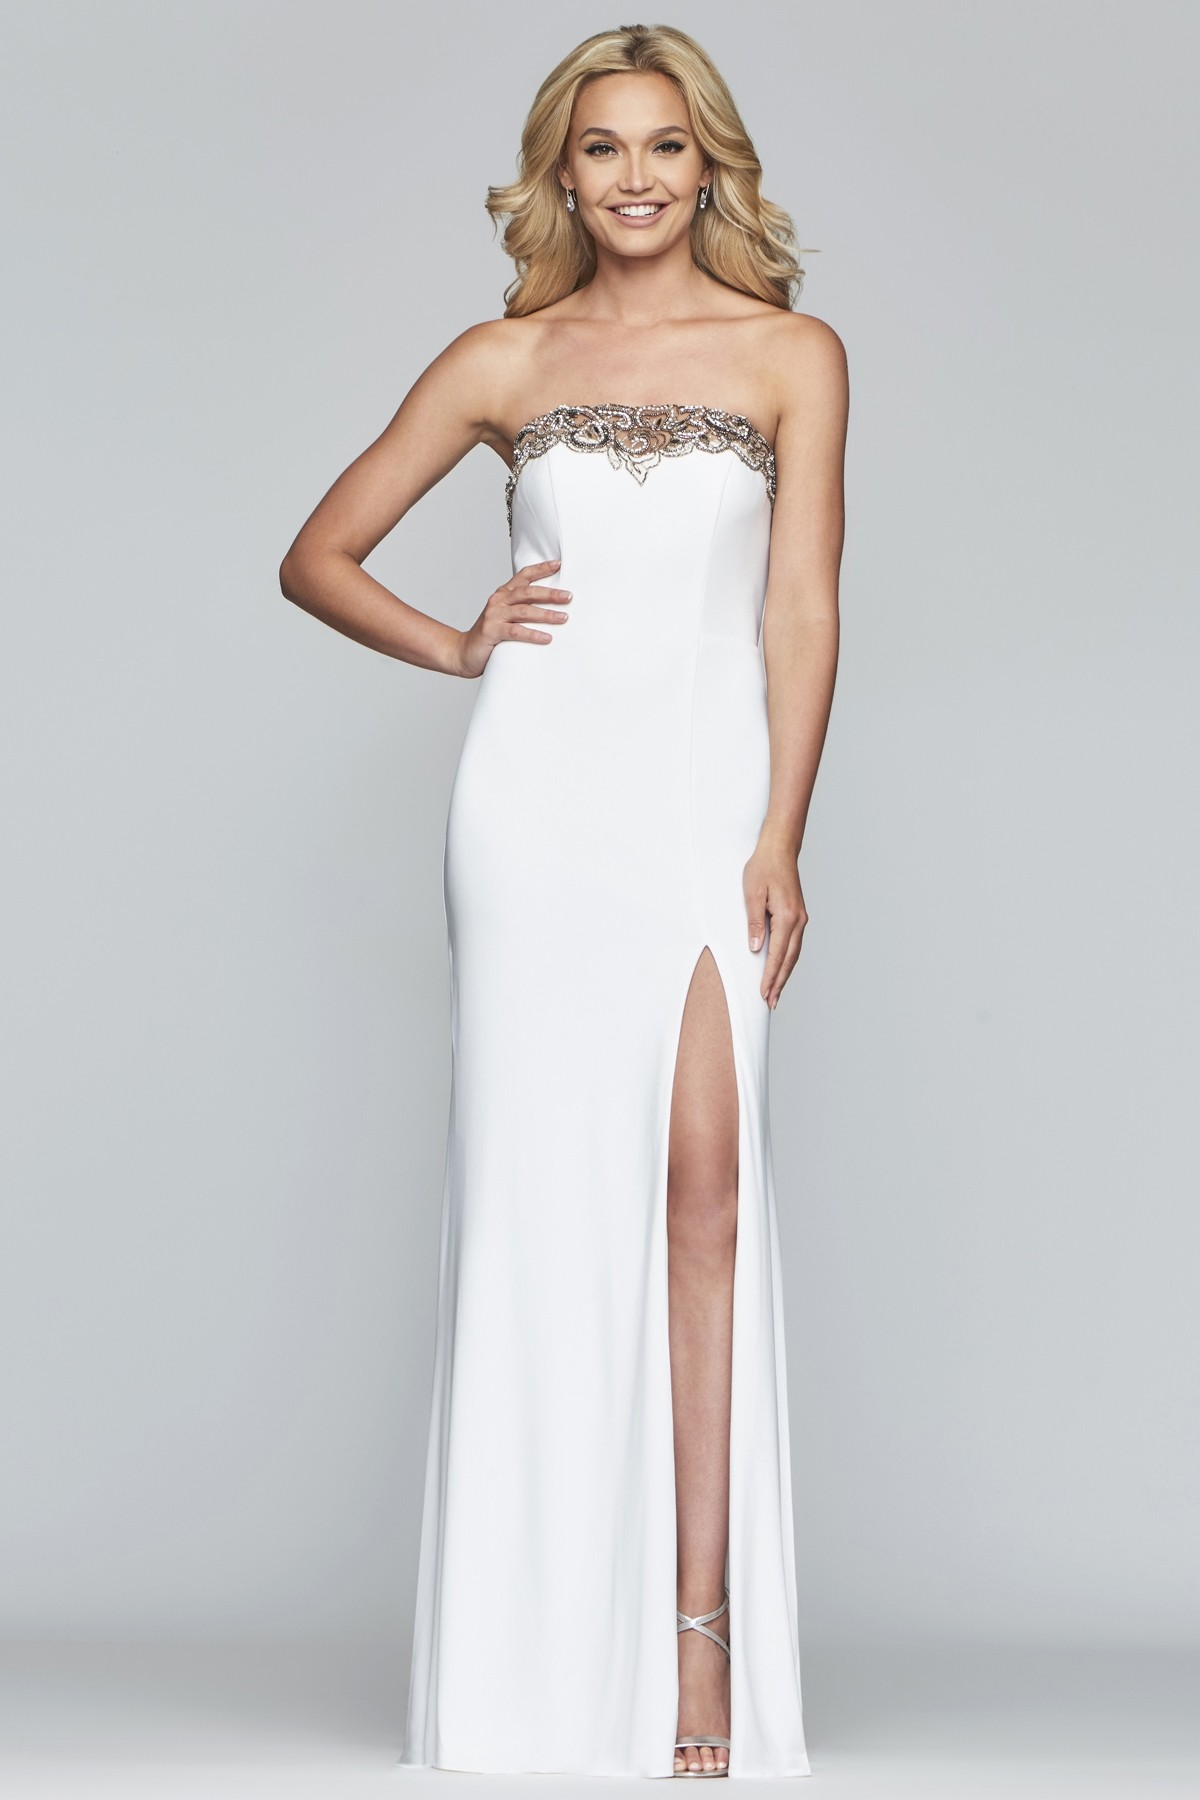 Faviana S10200 Strapless Jersey Gown with Slit